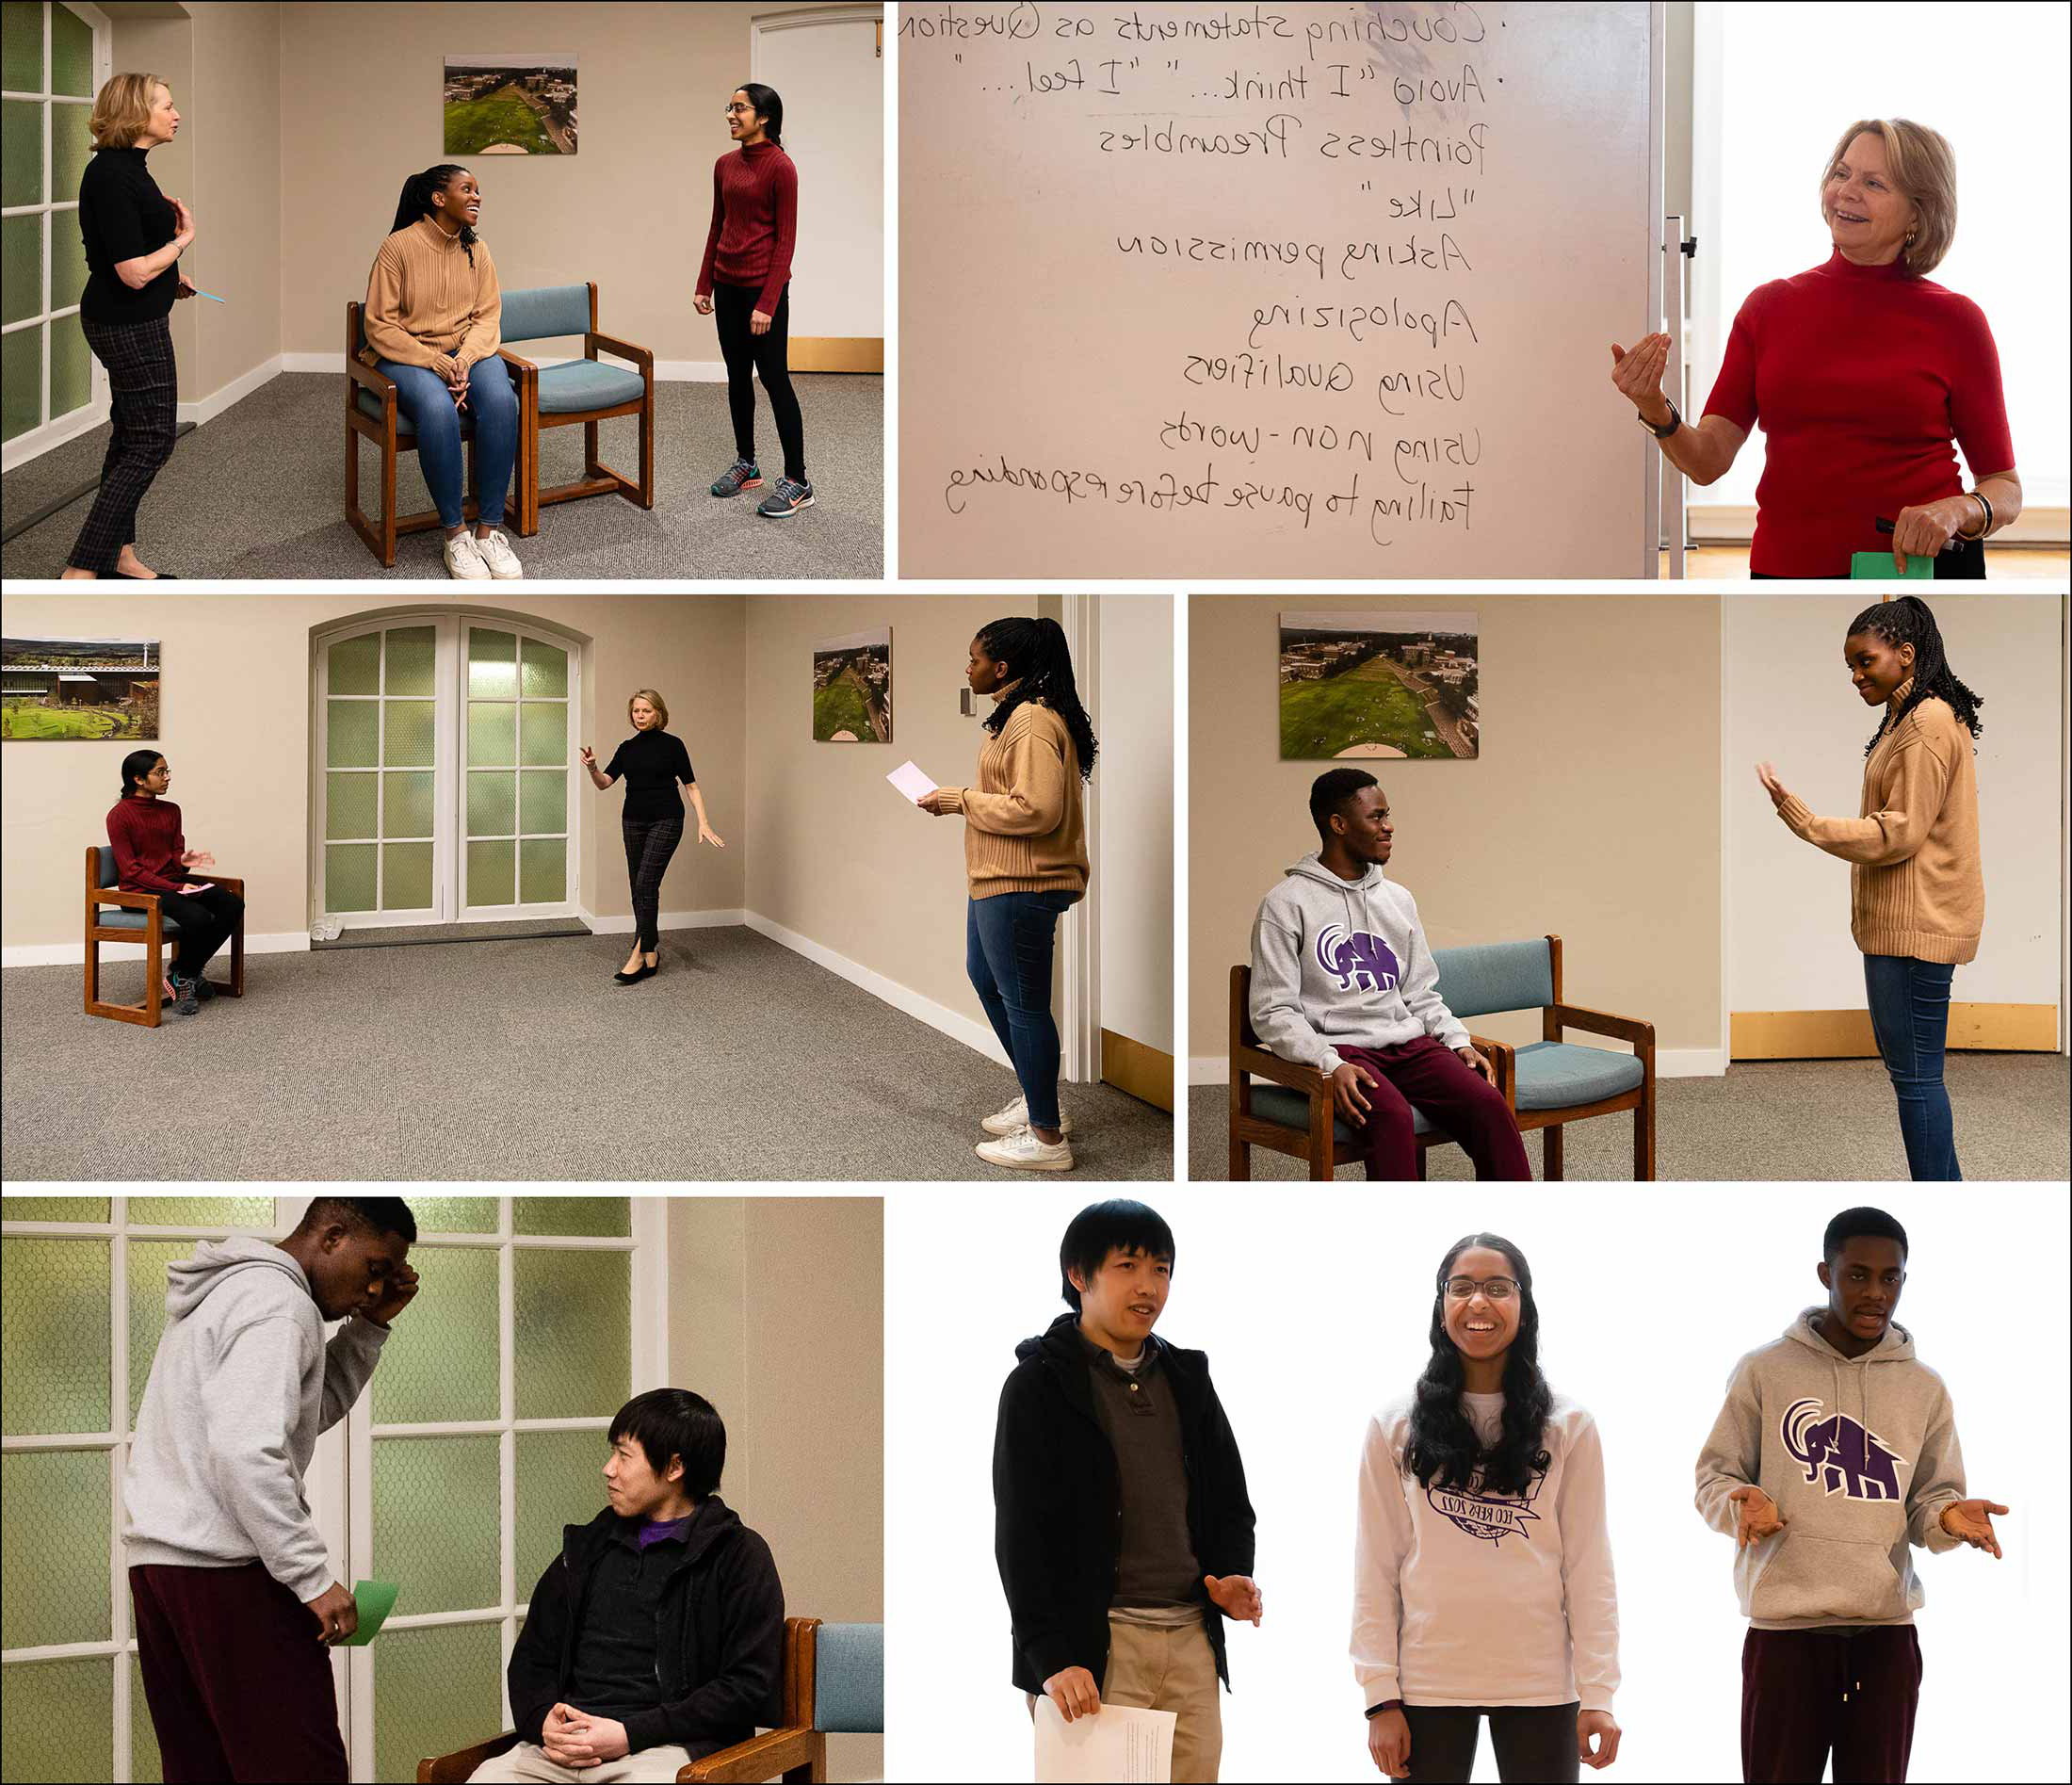 Collage of images of students practicing their public speaking skills